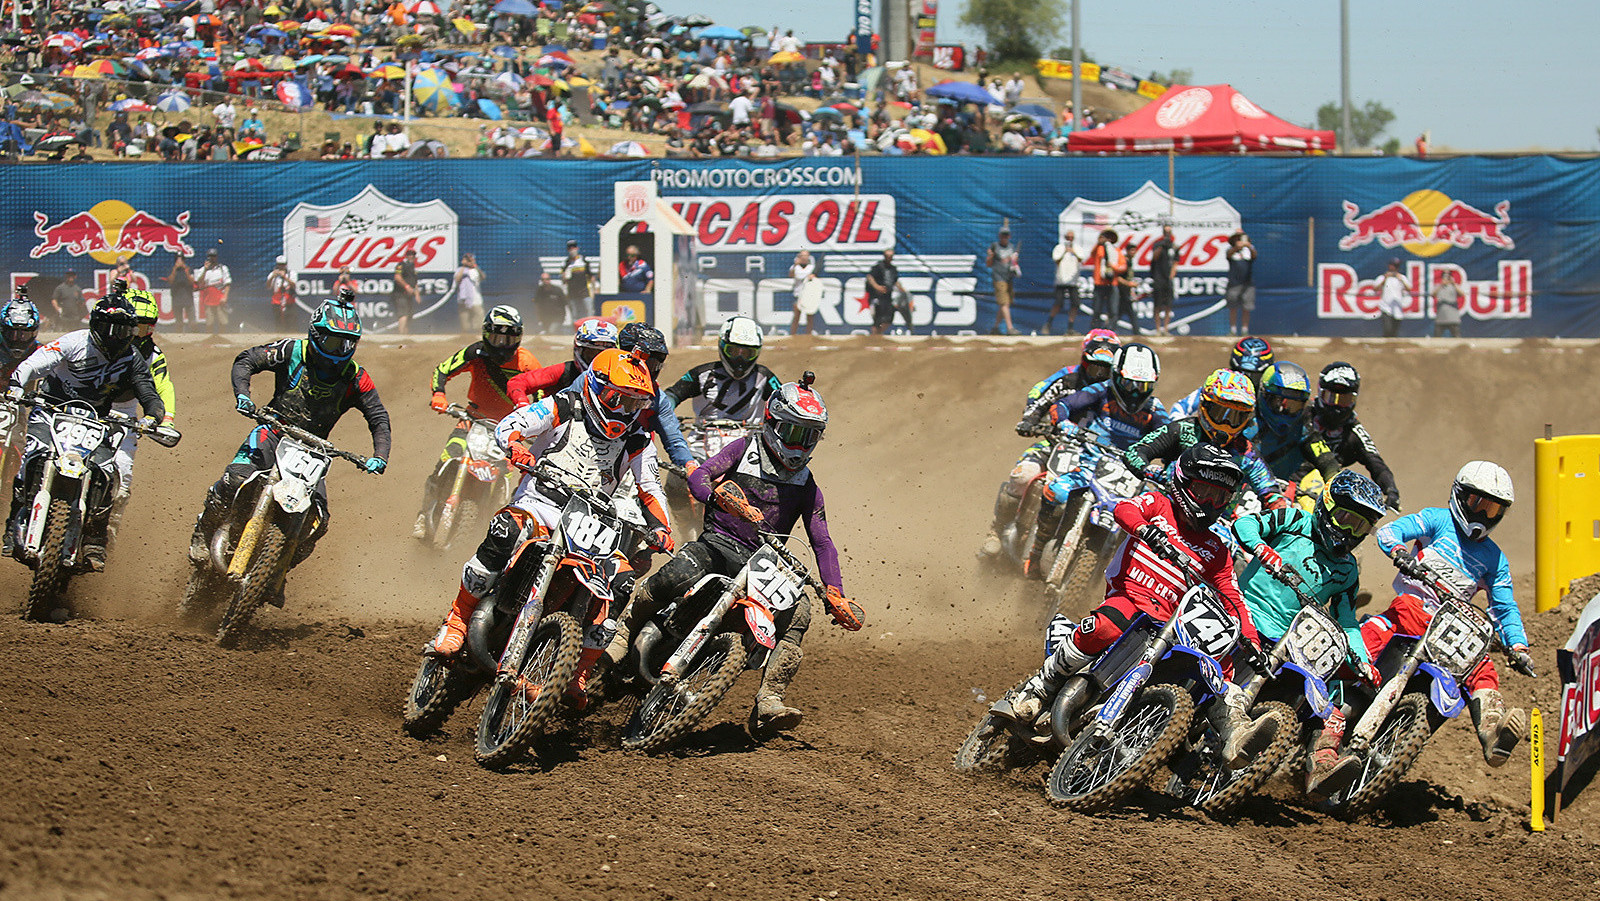 MX Sports Introduces Seven Round 125cc All Star Series to AMA Pro Motocross for 2018